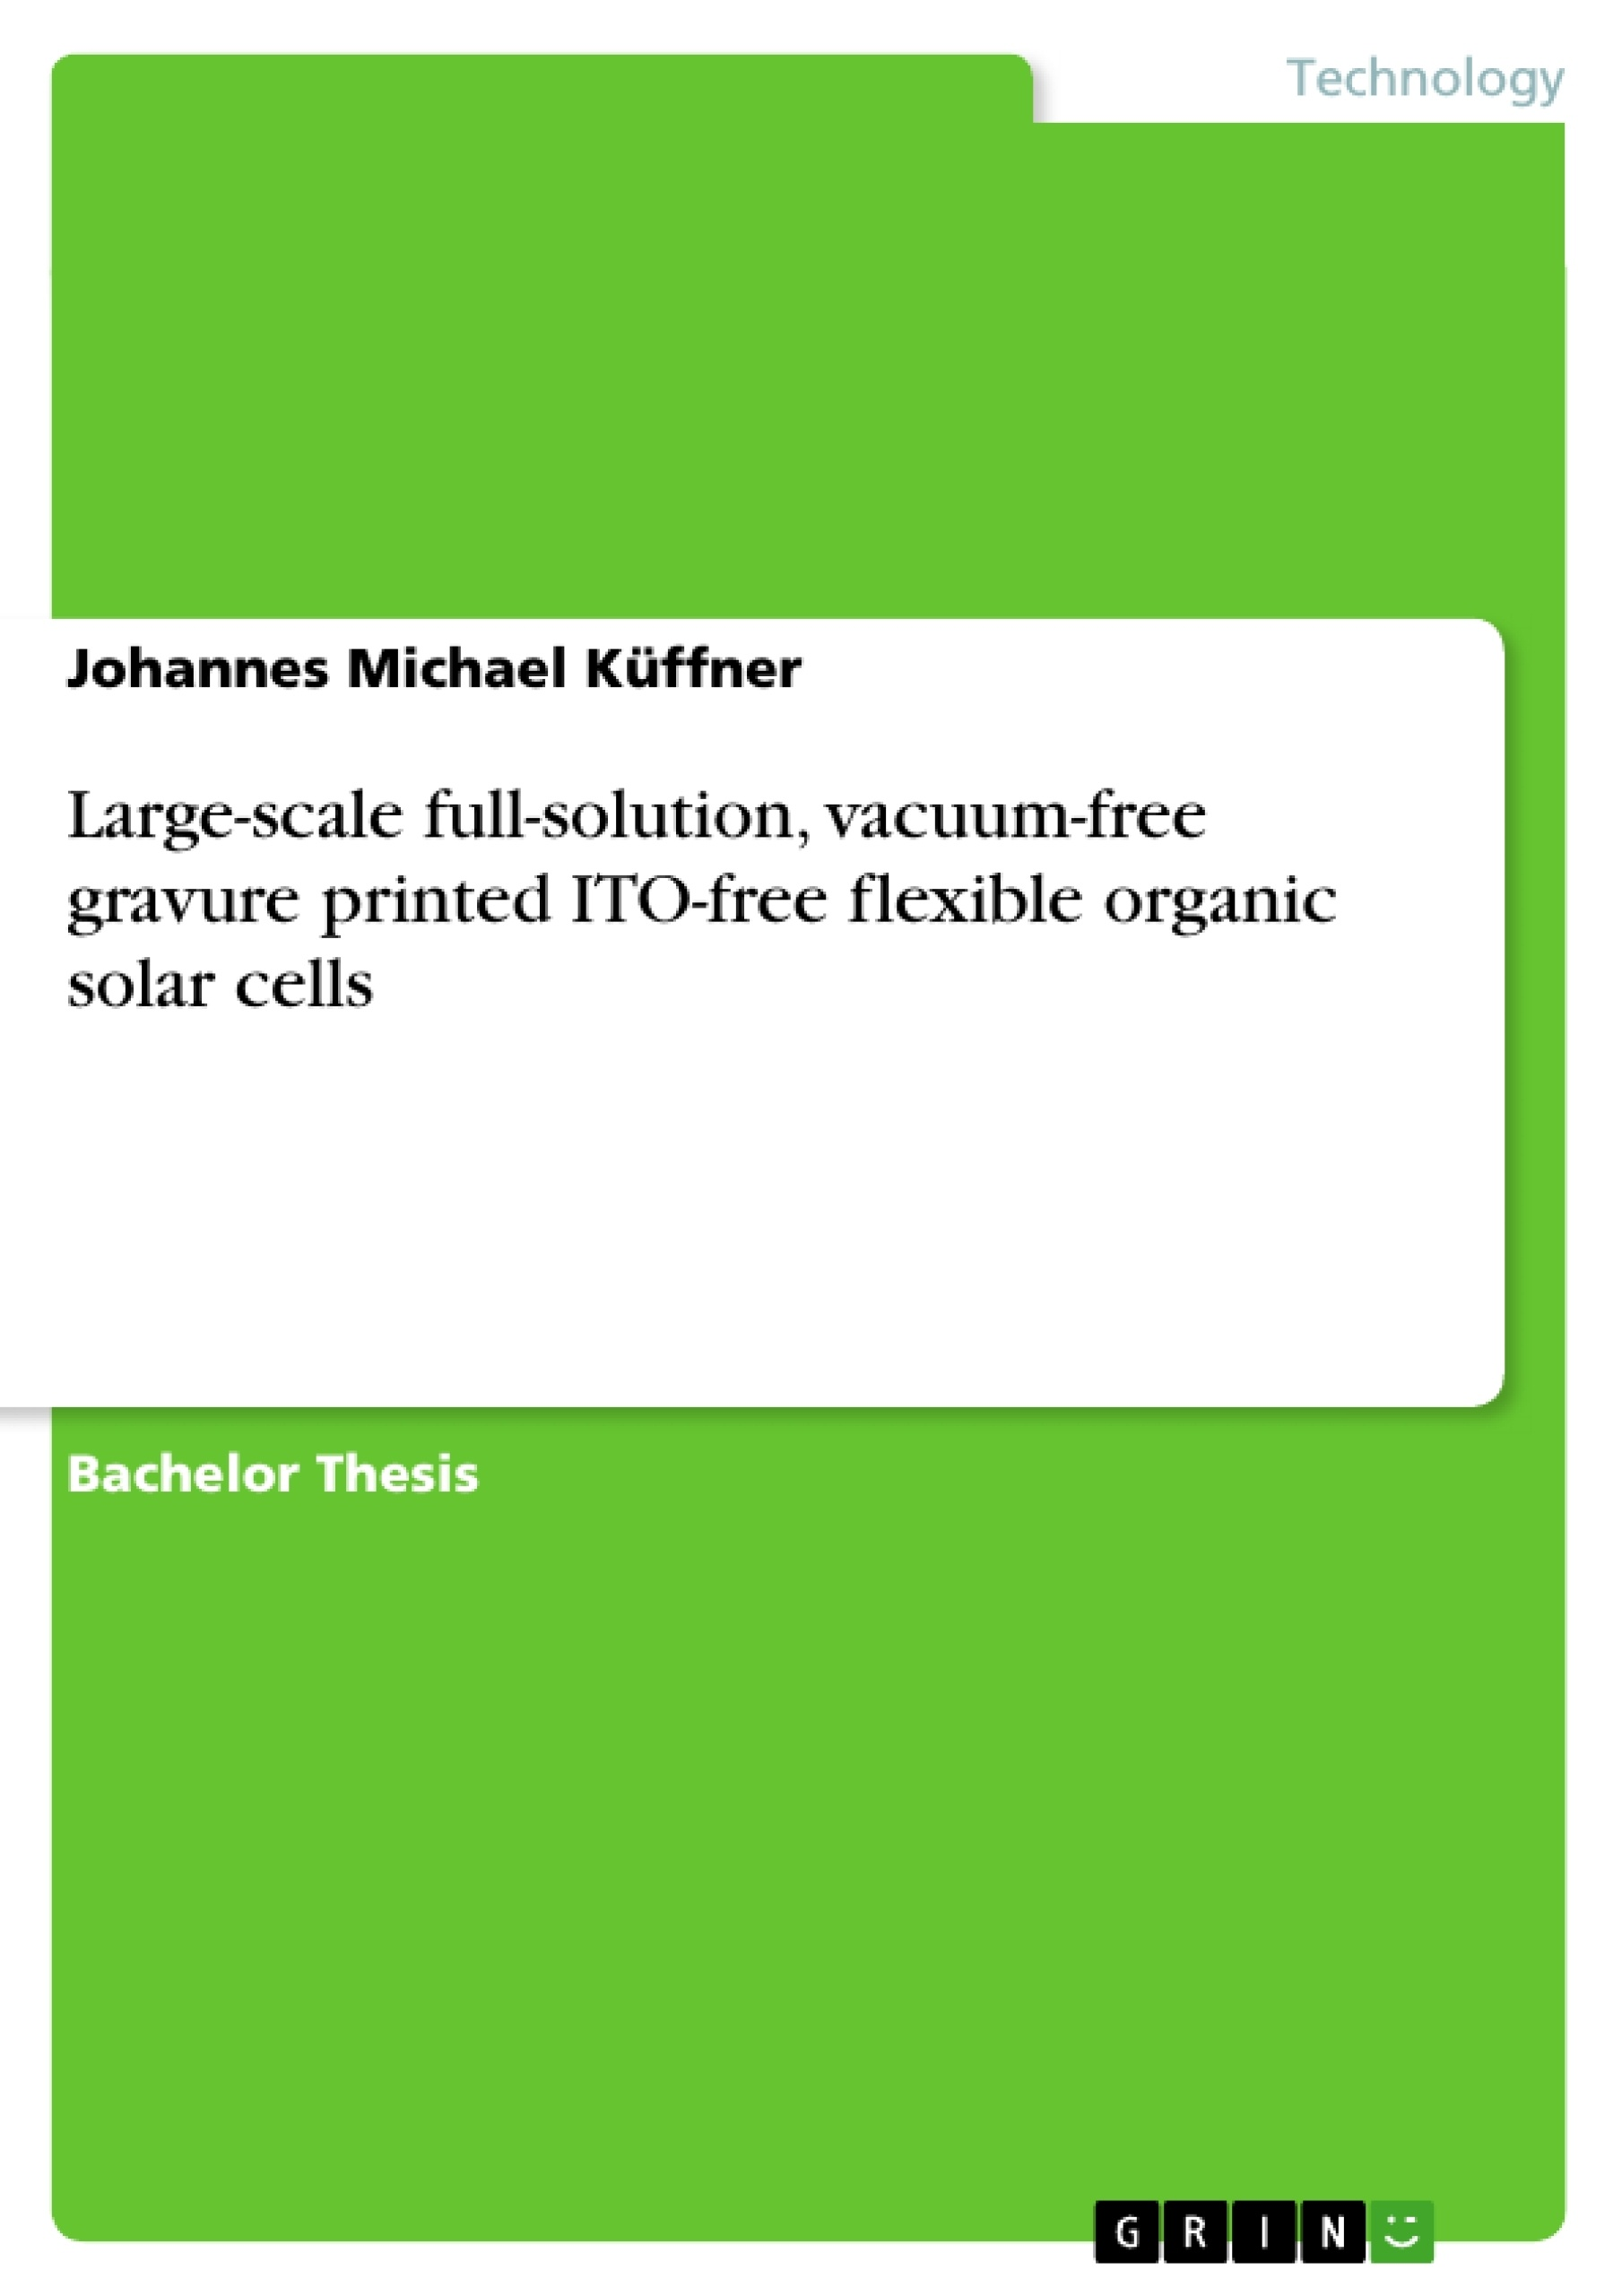 Title: Large-scale full-solution, vacuum-free gravure printed ITO-free flexible organic solar cells